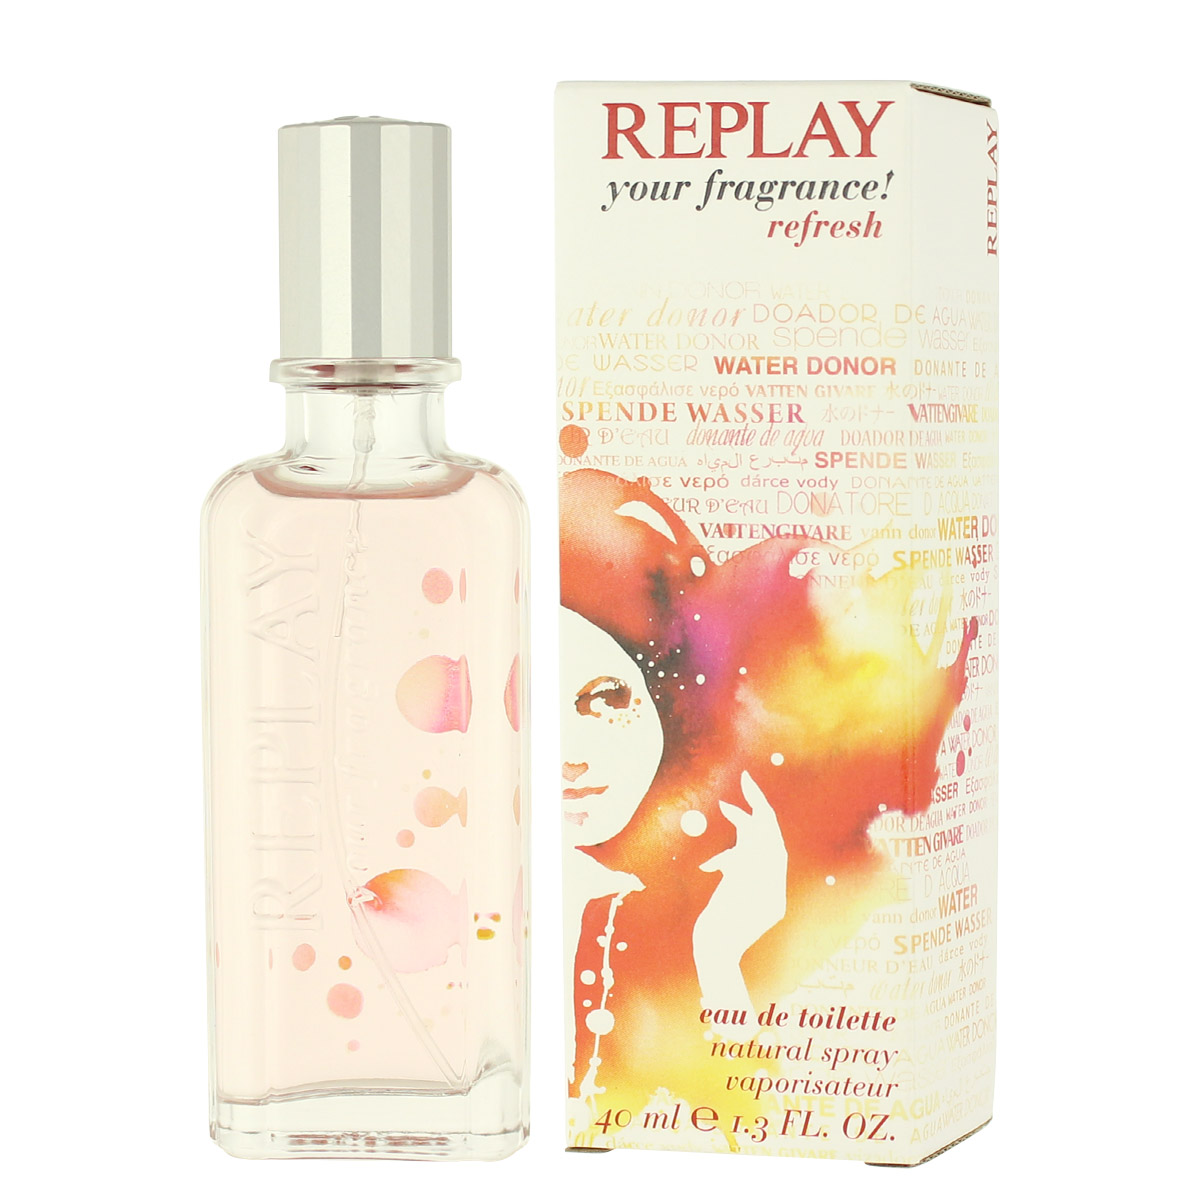 Replay your fragrance! Refresh EDT 40 ml W